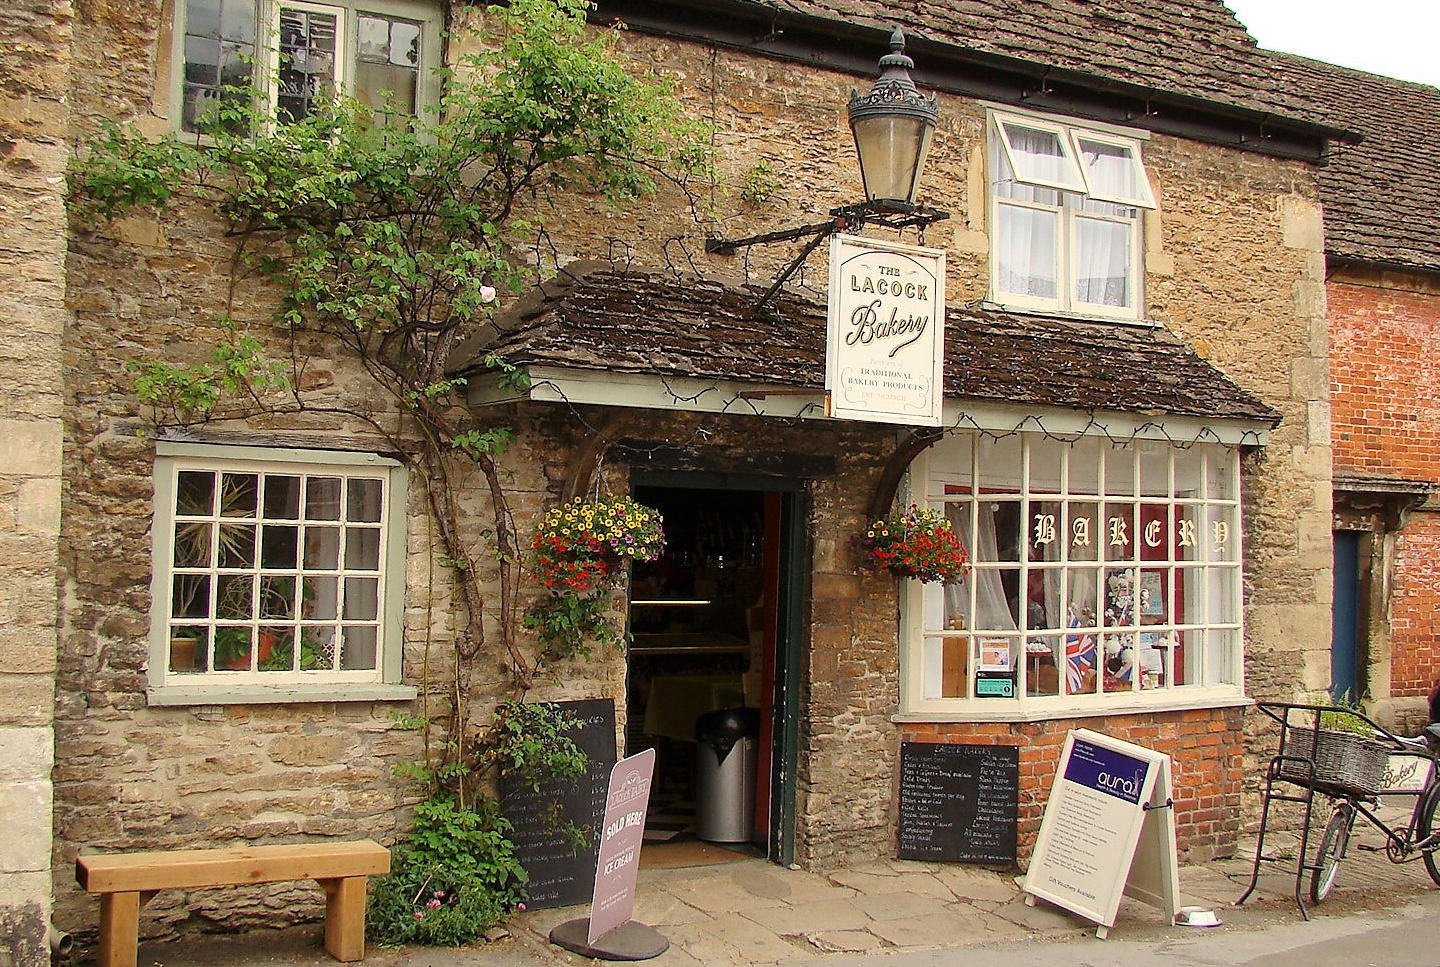 Lacock bakery, Lacock, Wiltshire. Staycation Inspiration by Malvern Garden Buildings